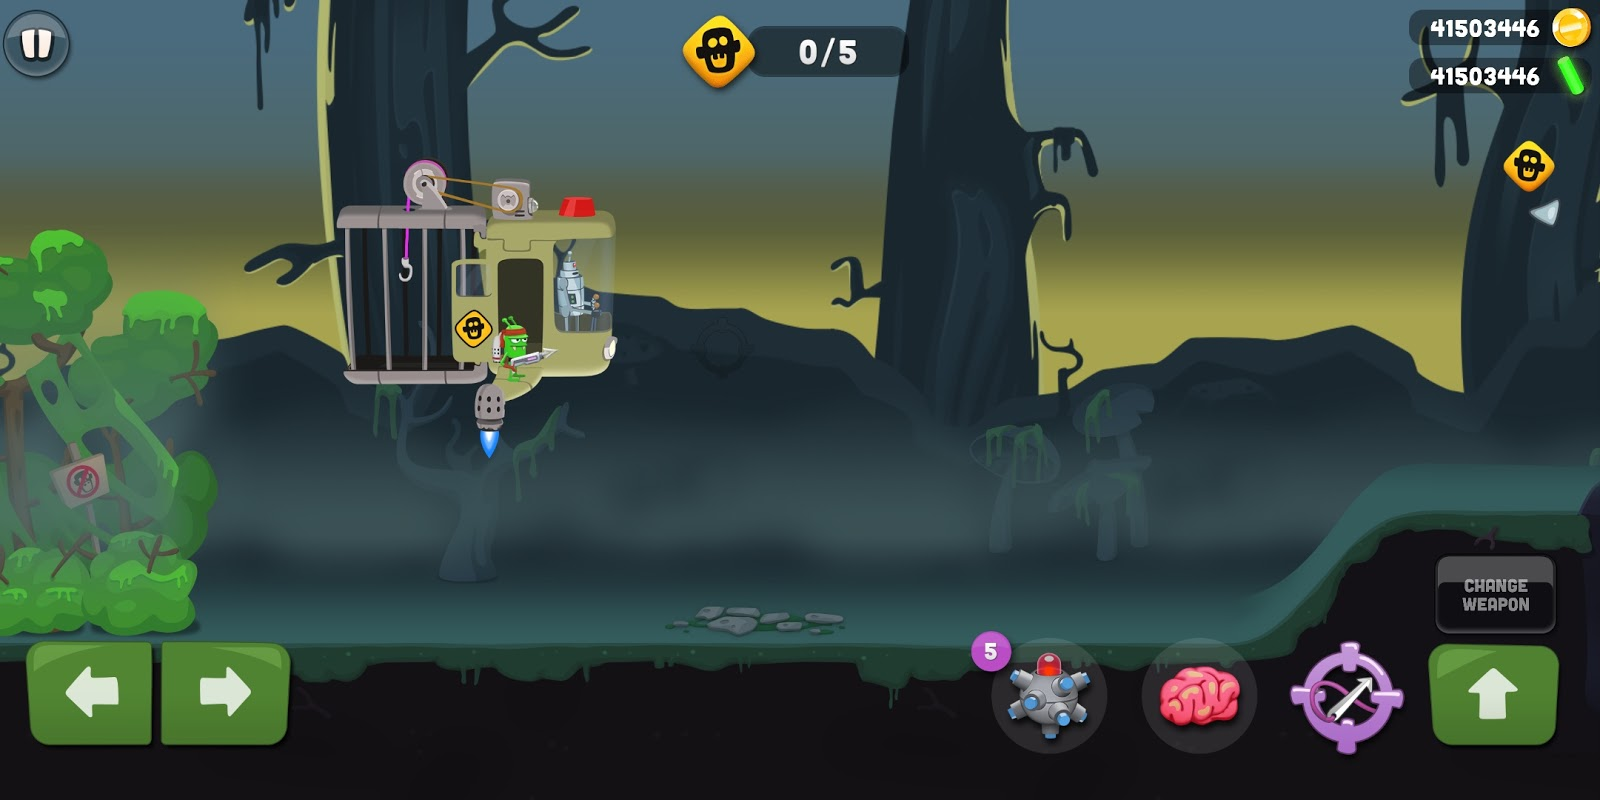 zombie catcher mod apk unlimited money and plutonium